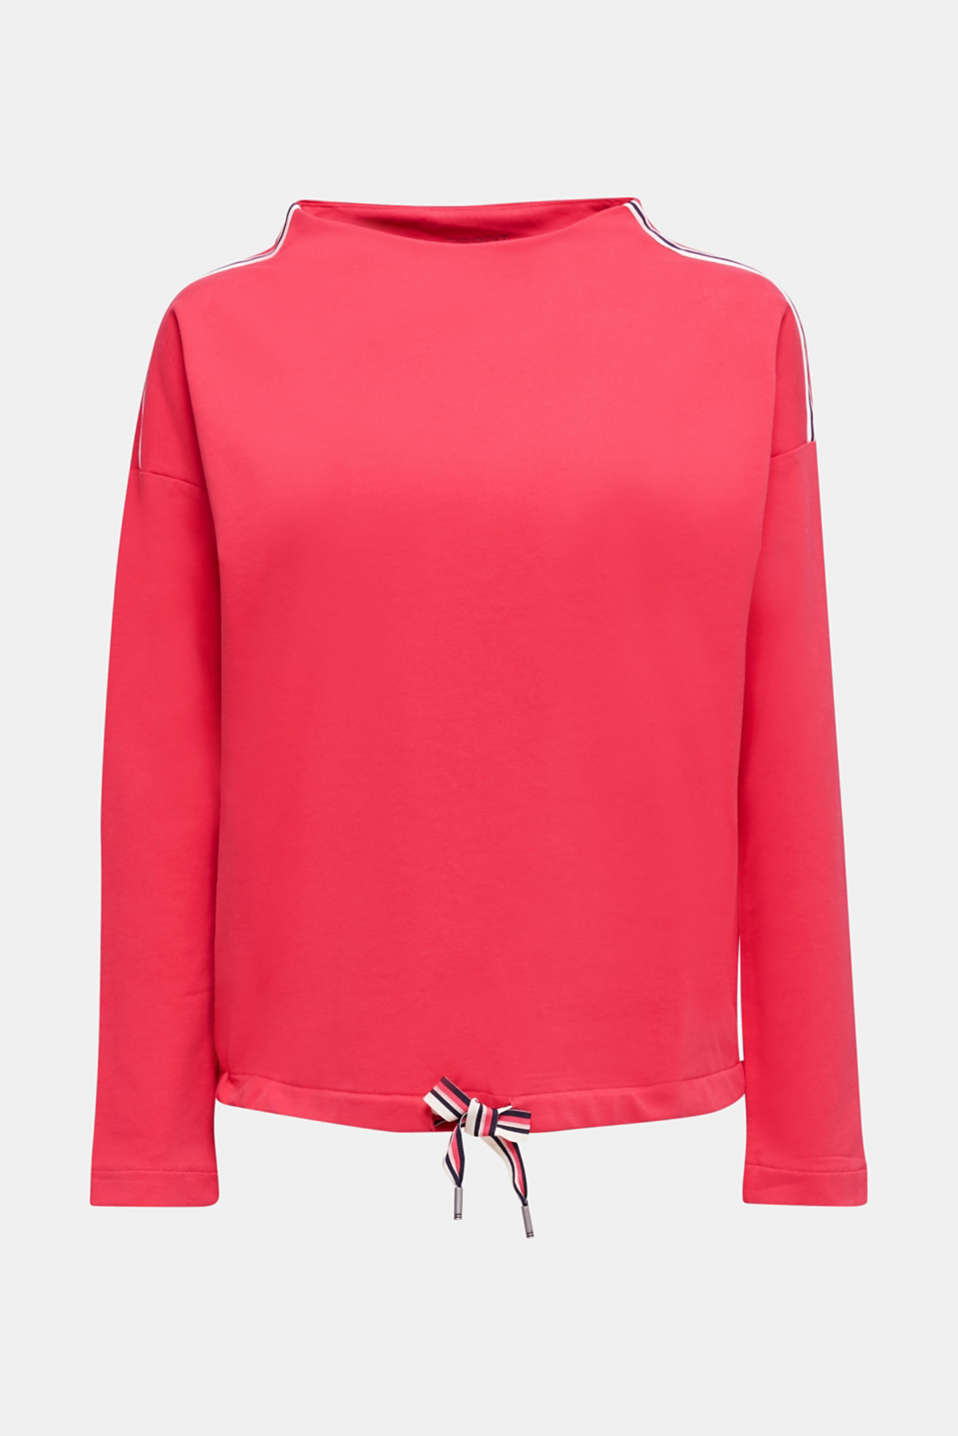 Stretch sweatshirt with a stand-up collar and stripes, BERRY RED, detail image number 5